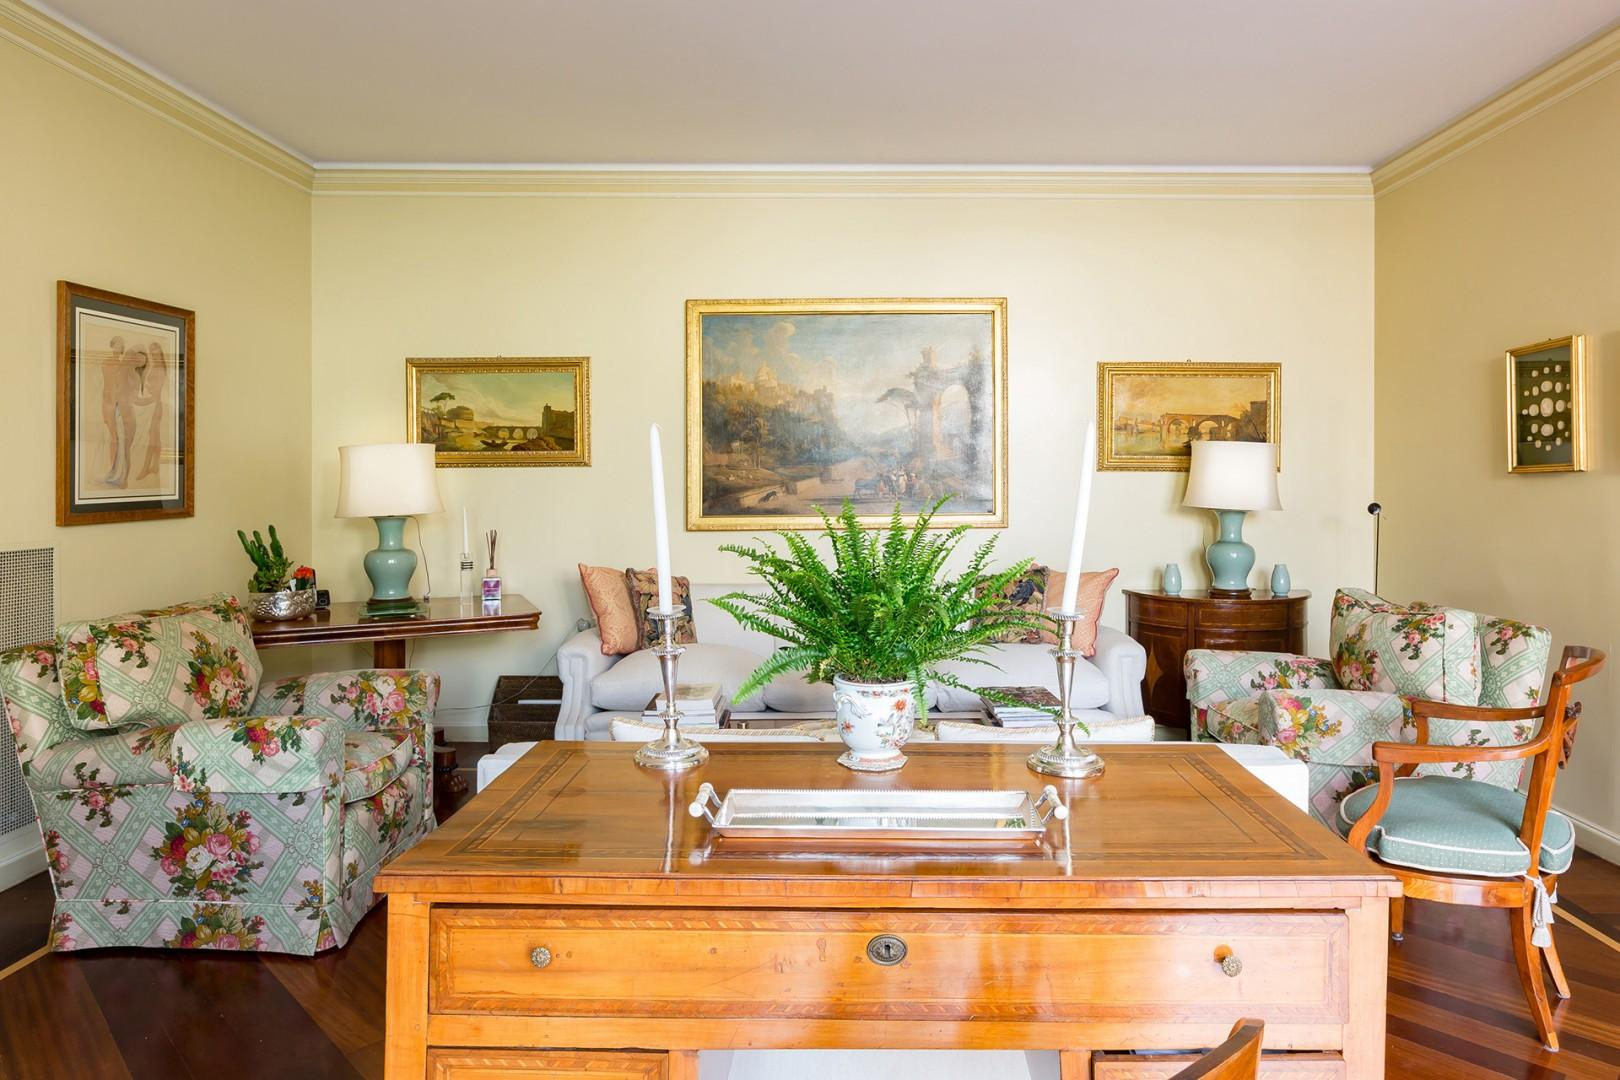 Fine oil paintings of Rome and the Roman countryside decorate the walls of the sunny living room.